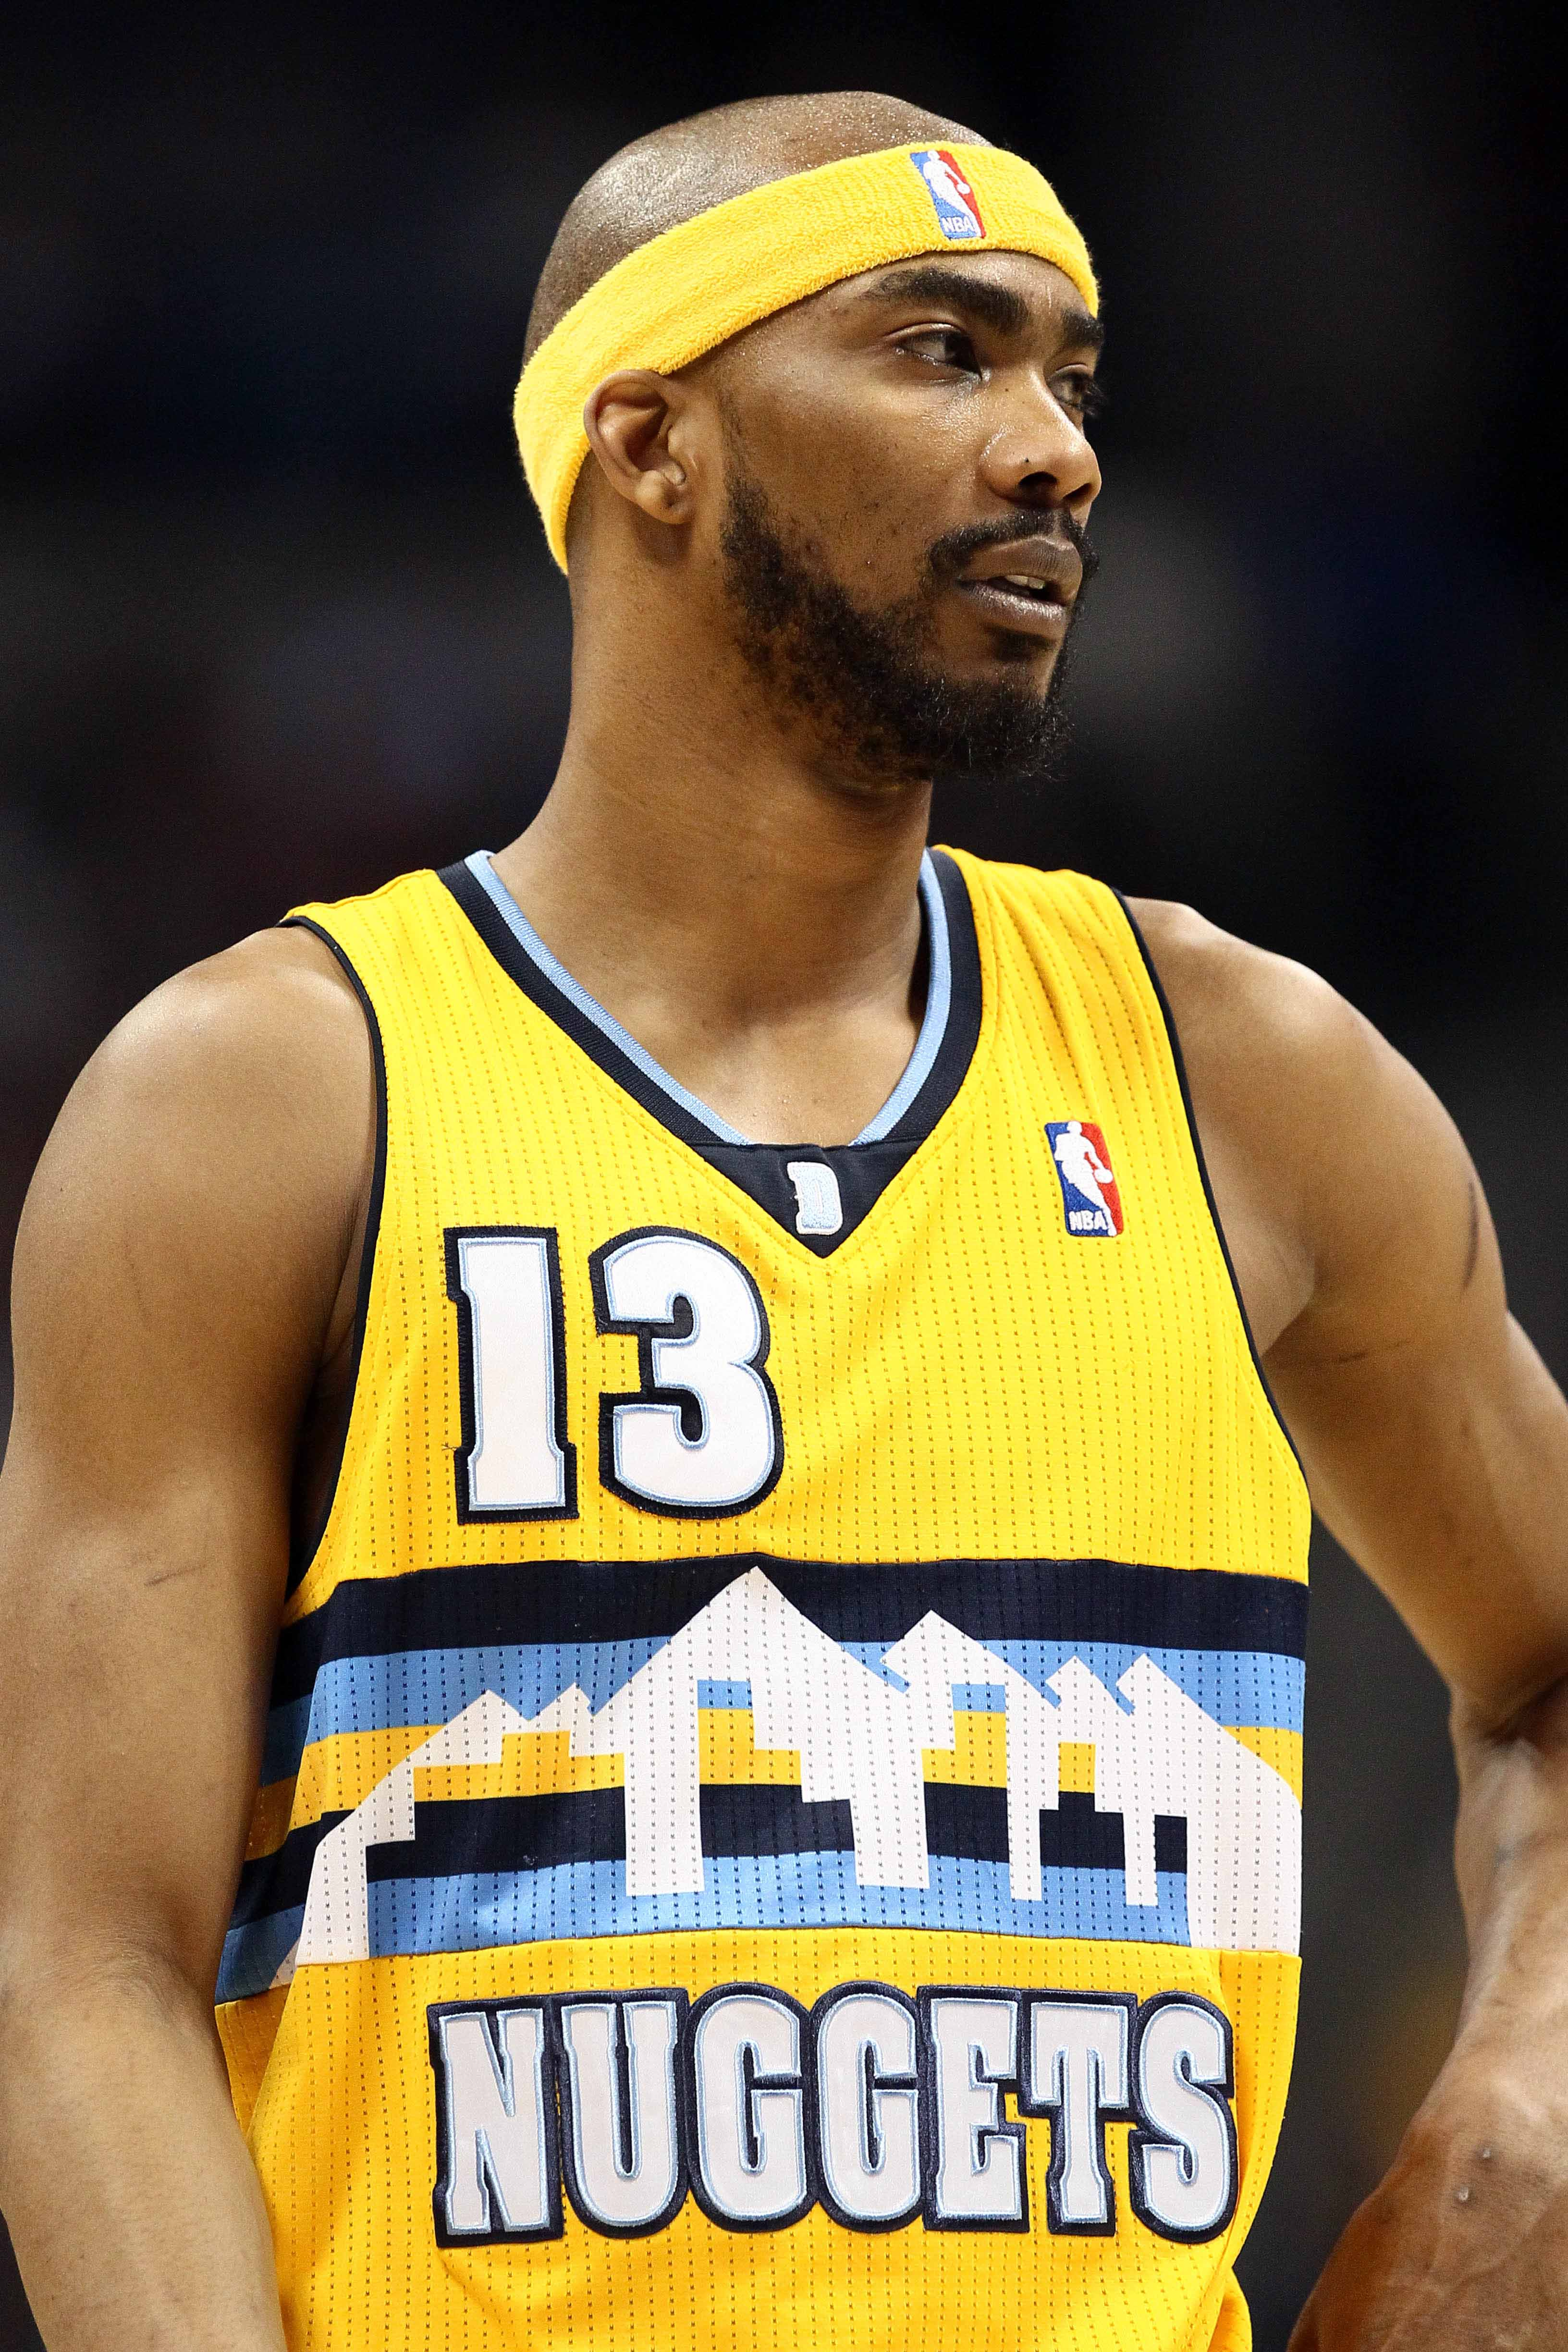 Corey Brewer averaged 12.1 points for the Nuggets last season. (USA Today Sports)